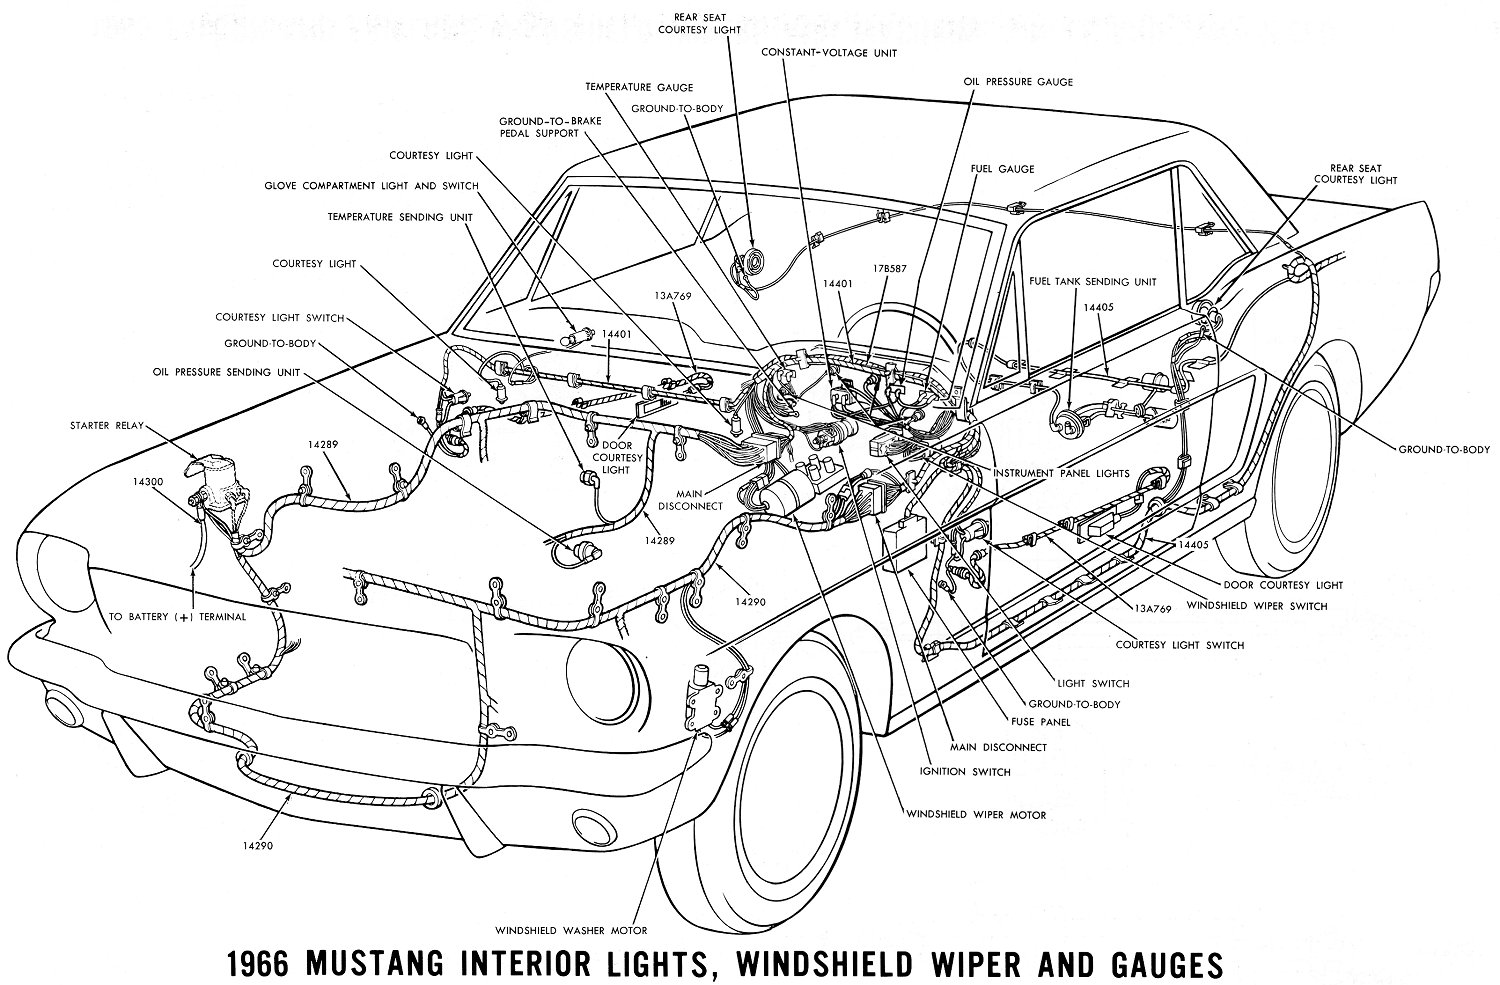 harley davidson headlight wiring harness with Wiring Diagram 1966 Mustang Enlarged on Service 20notes in addition 1994 Harley Ignition Switch Wiring Diagram furthermore Bobber Wire Harness Kit together with Harley Davidson Heated Grips Wiring Diagram also Wiring Diagram For Honda Valkyrie.